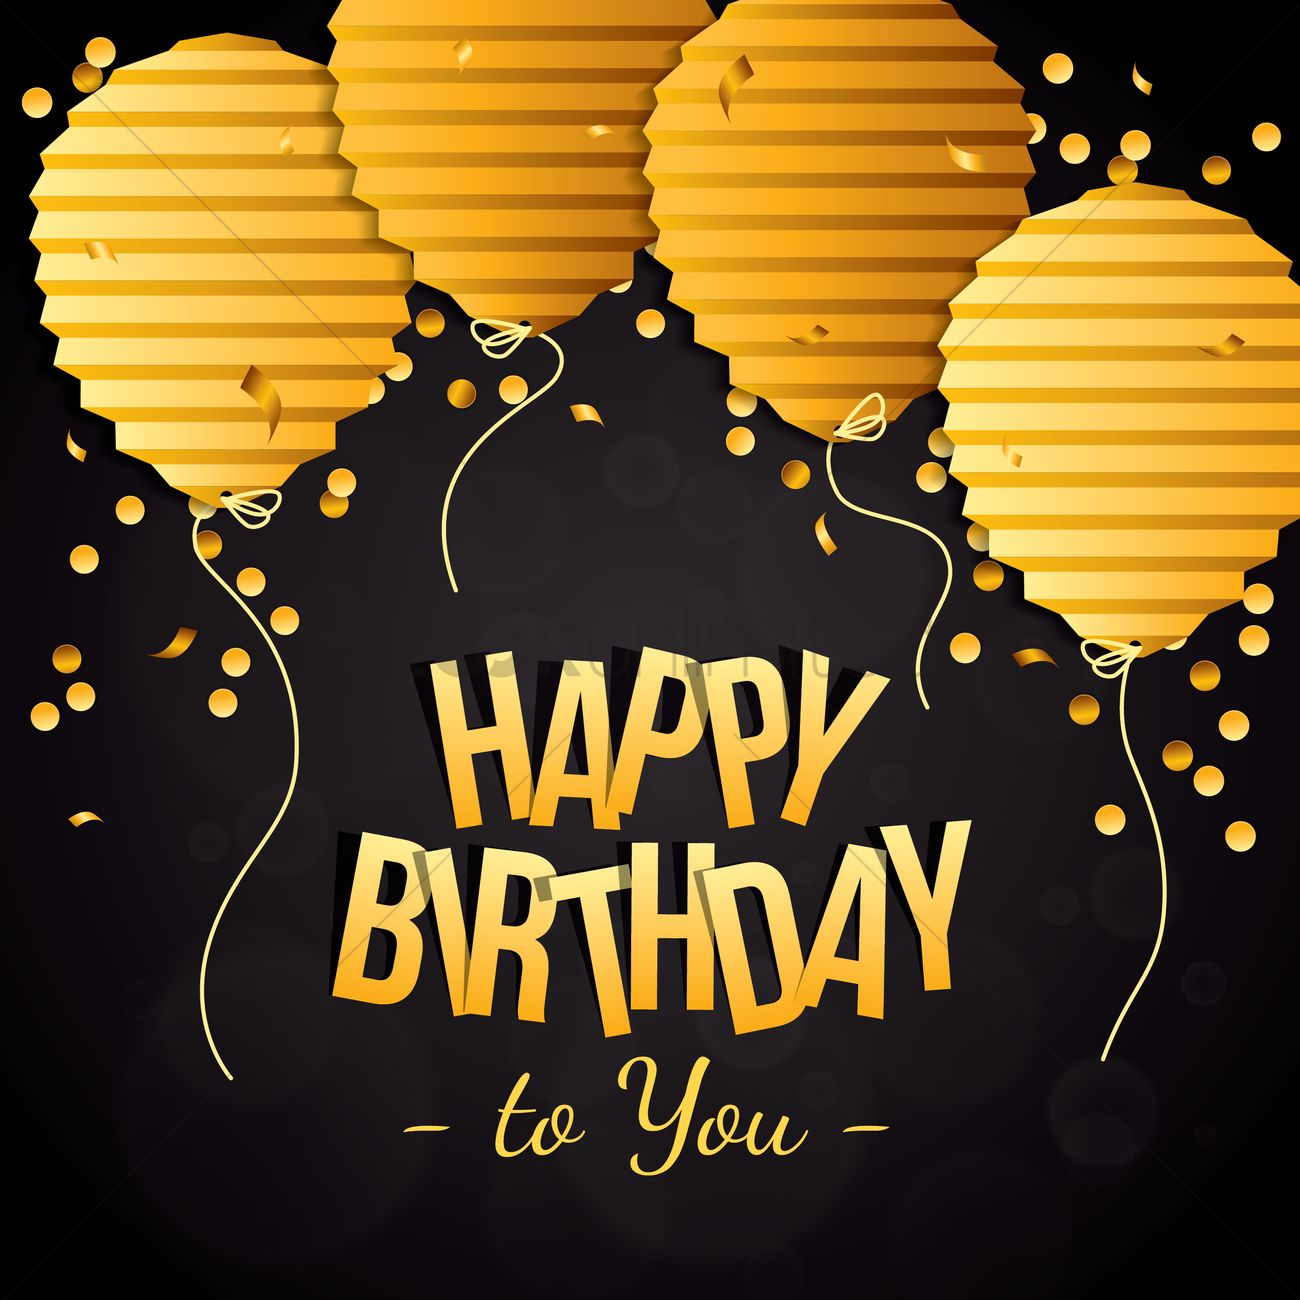 Happy Birthday With Classy Concept Vector Image 1934695 Stockunlimited